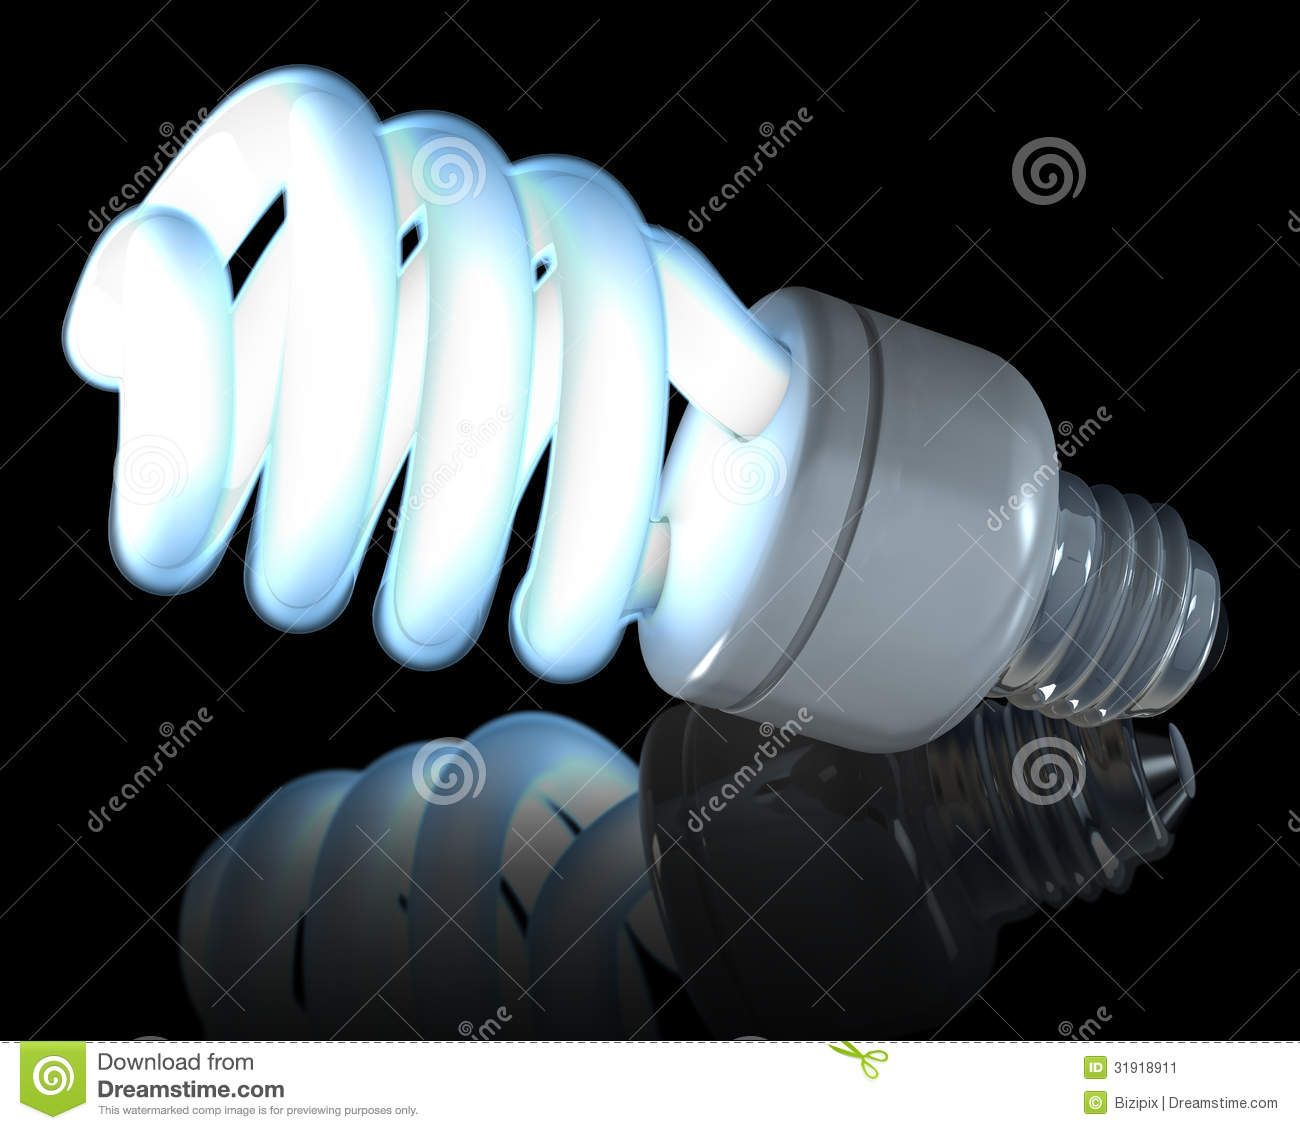 Snap Neon Bulb Animation Photos On Pinterest Fluorescent Light Diagram Fluorescentgif Stock Image 31918911